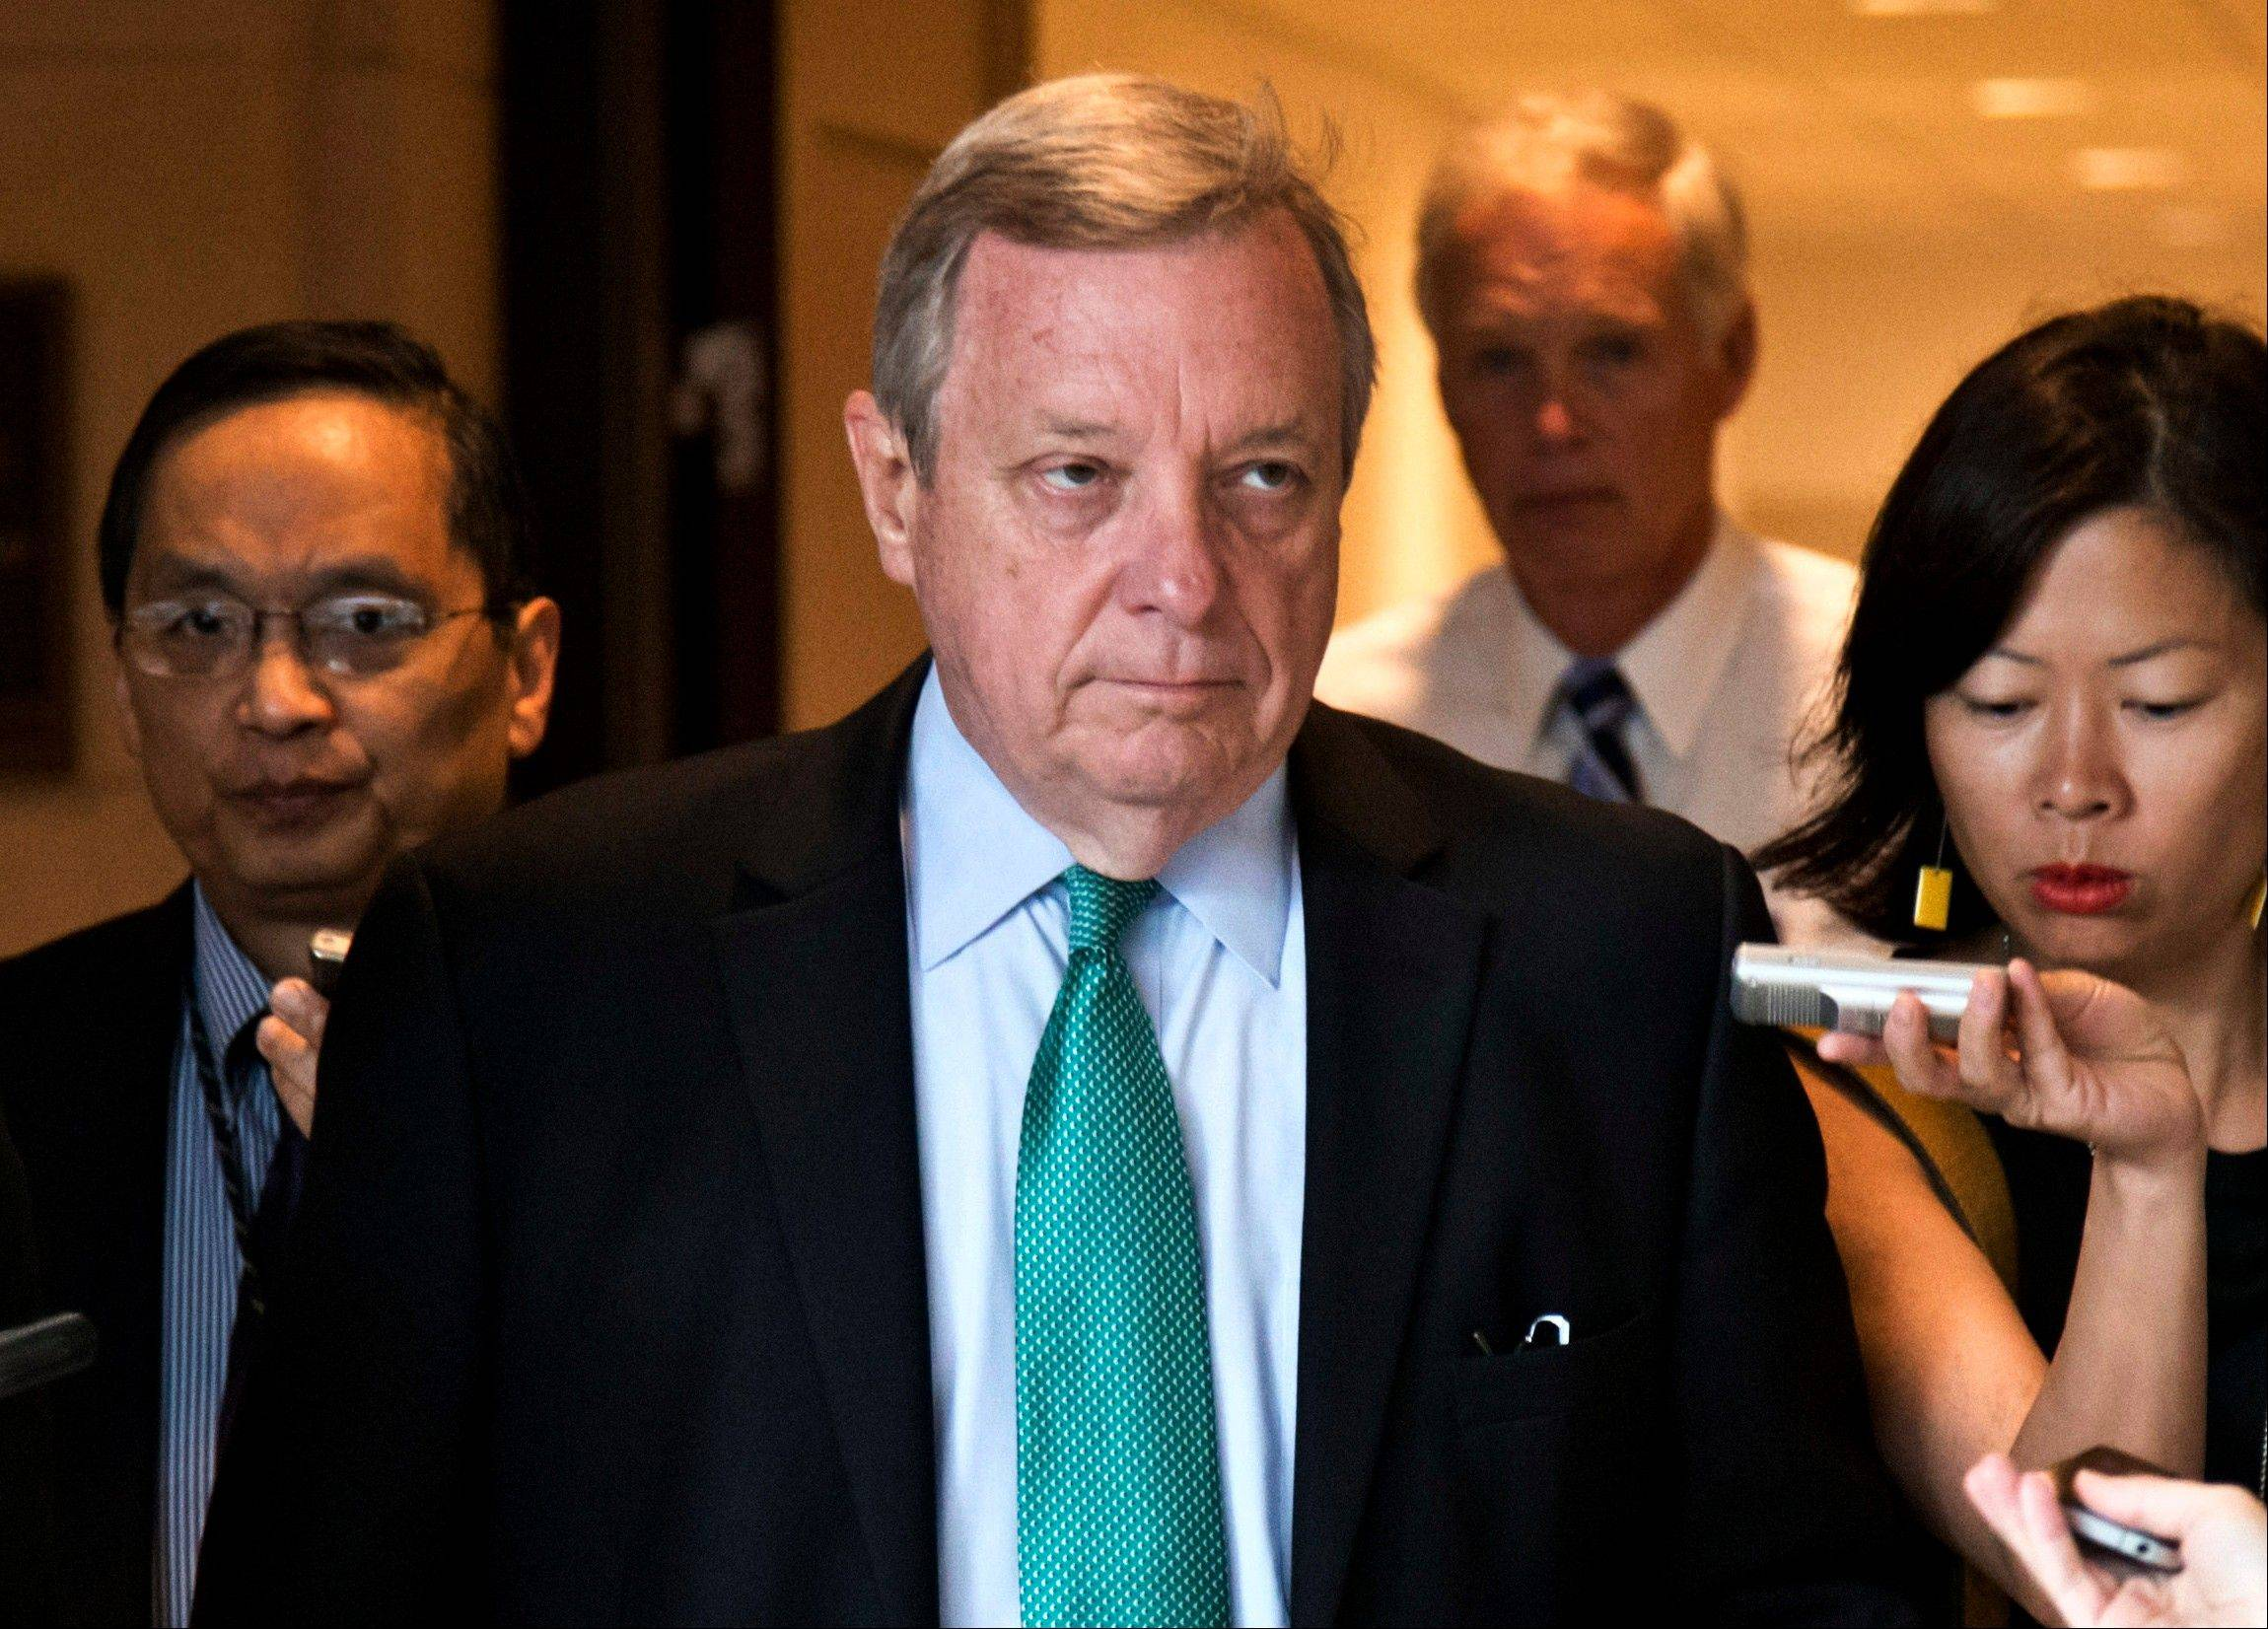 U.S, Sen. Dick Durbin said Friday that he's working with Illinois lawmakers to raise the state's minimum wage, which now is $8.25 an hour.